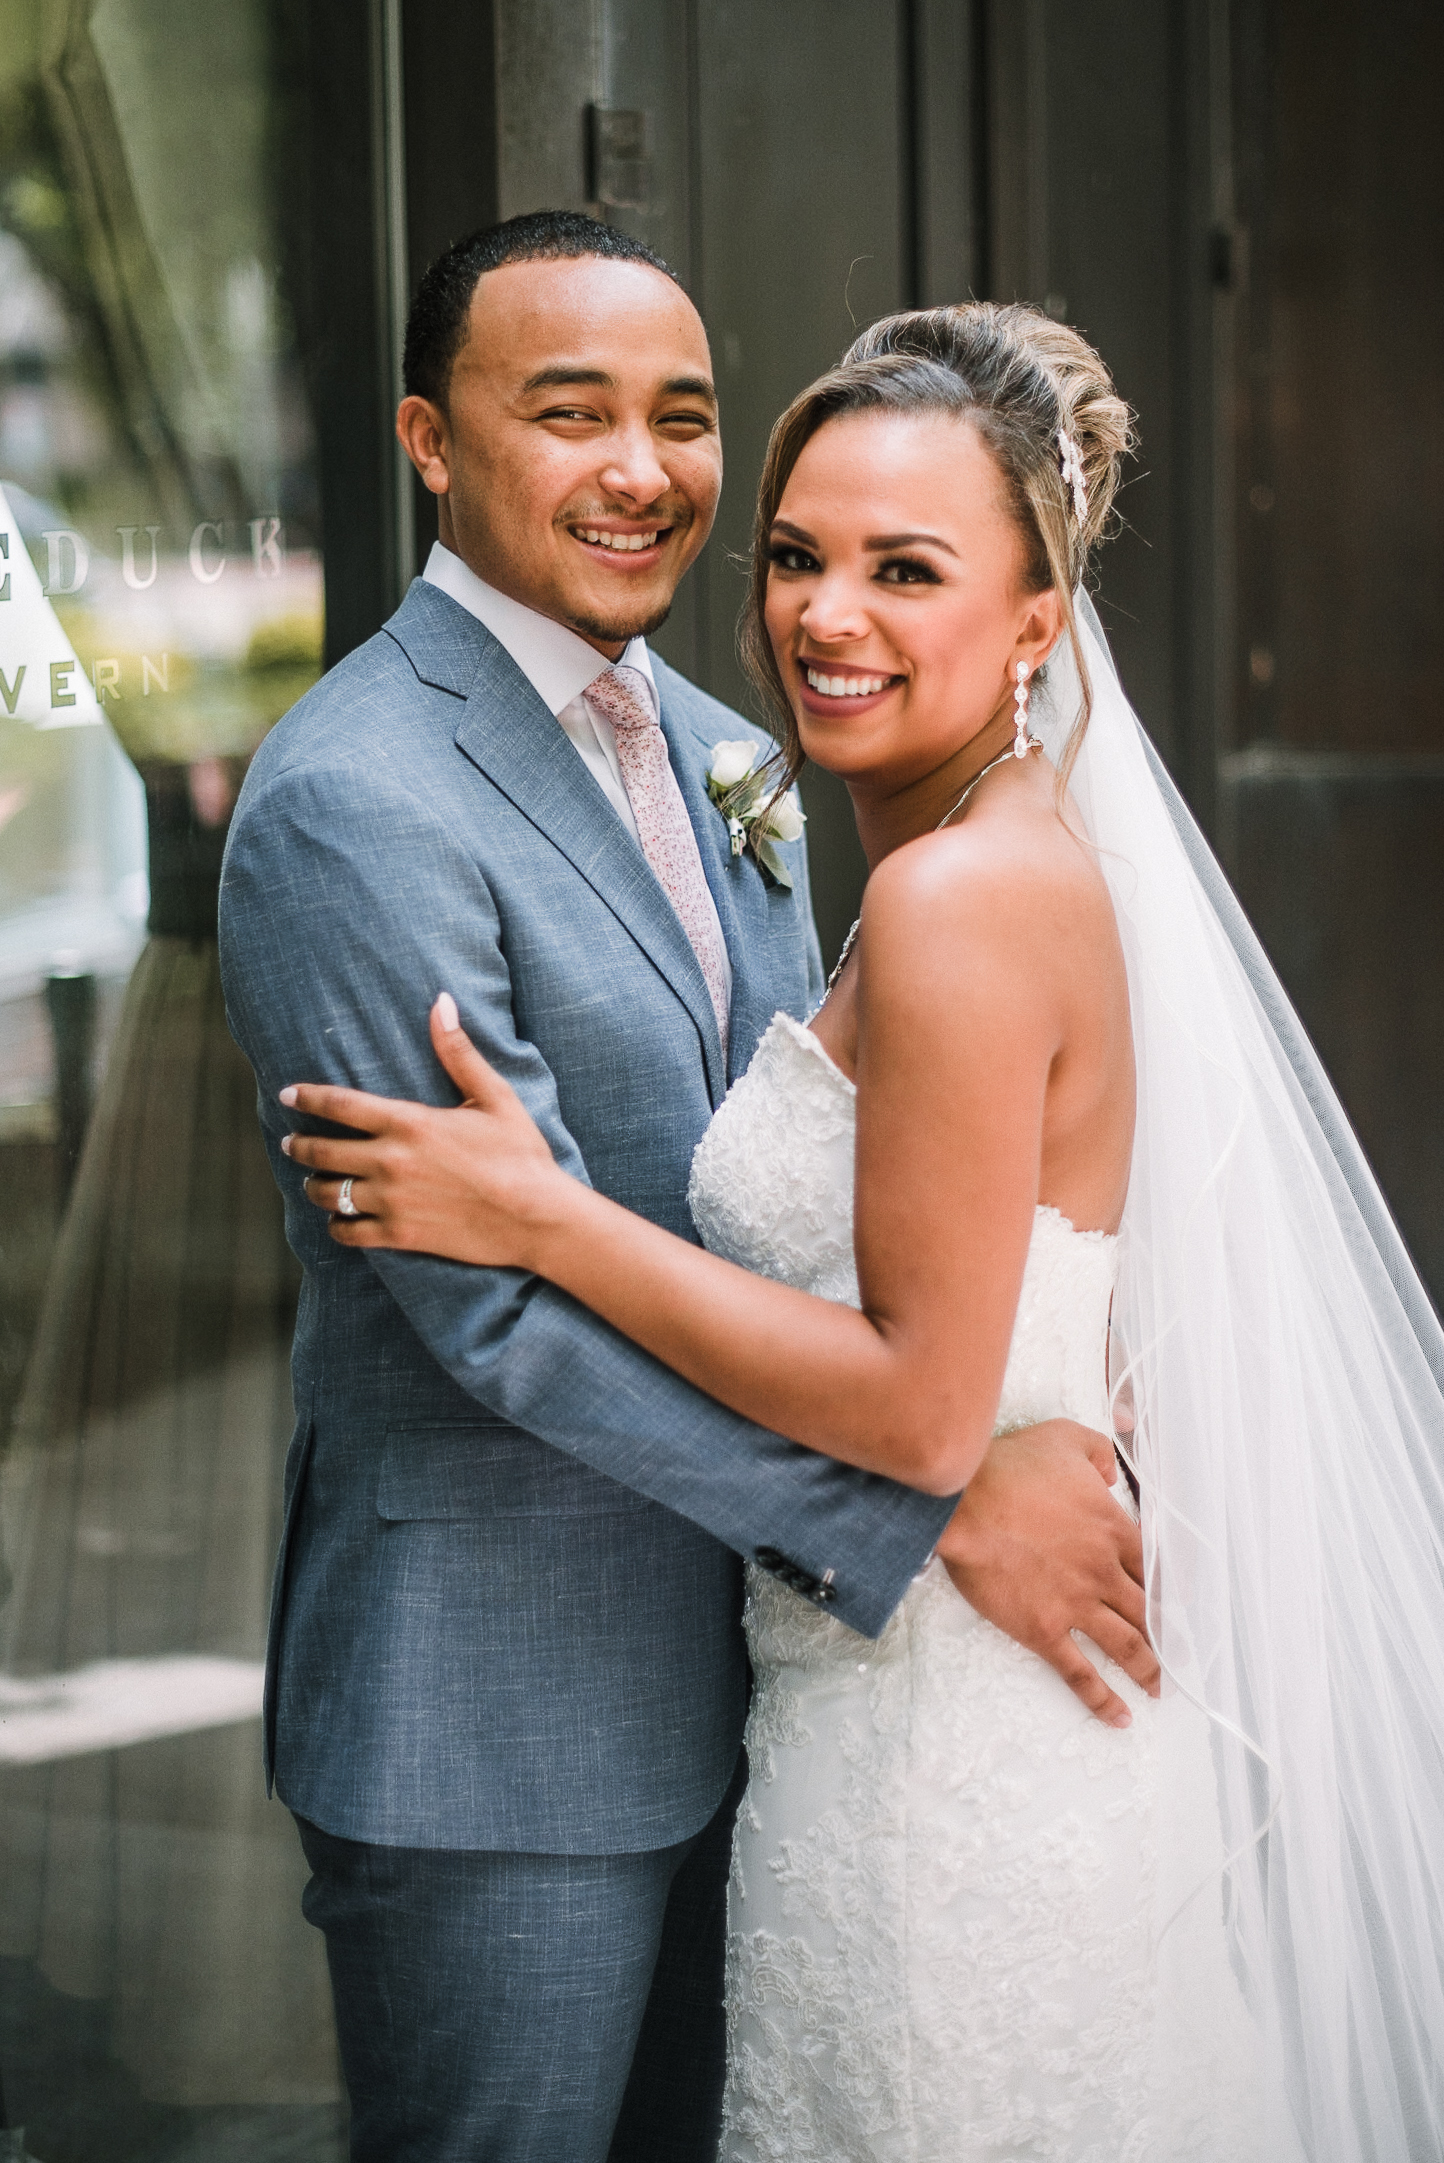 bride and groom smiling at The Park Hyatt Hotel in Washington DC